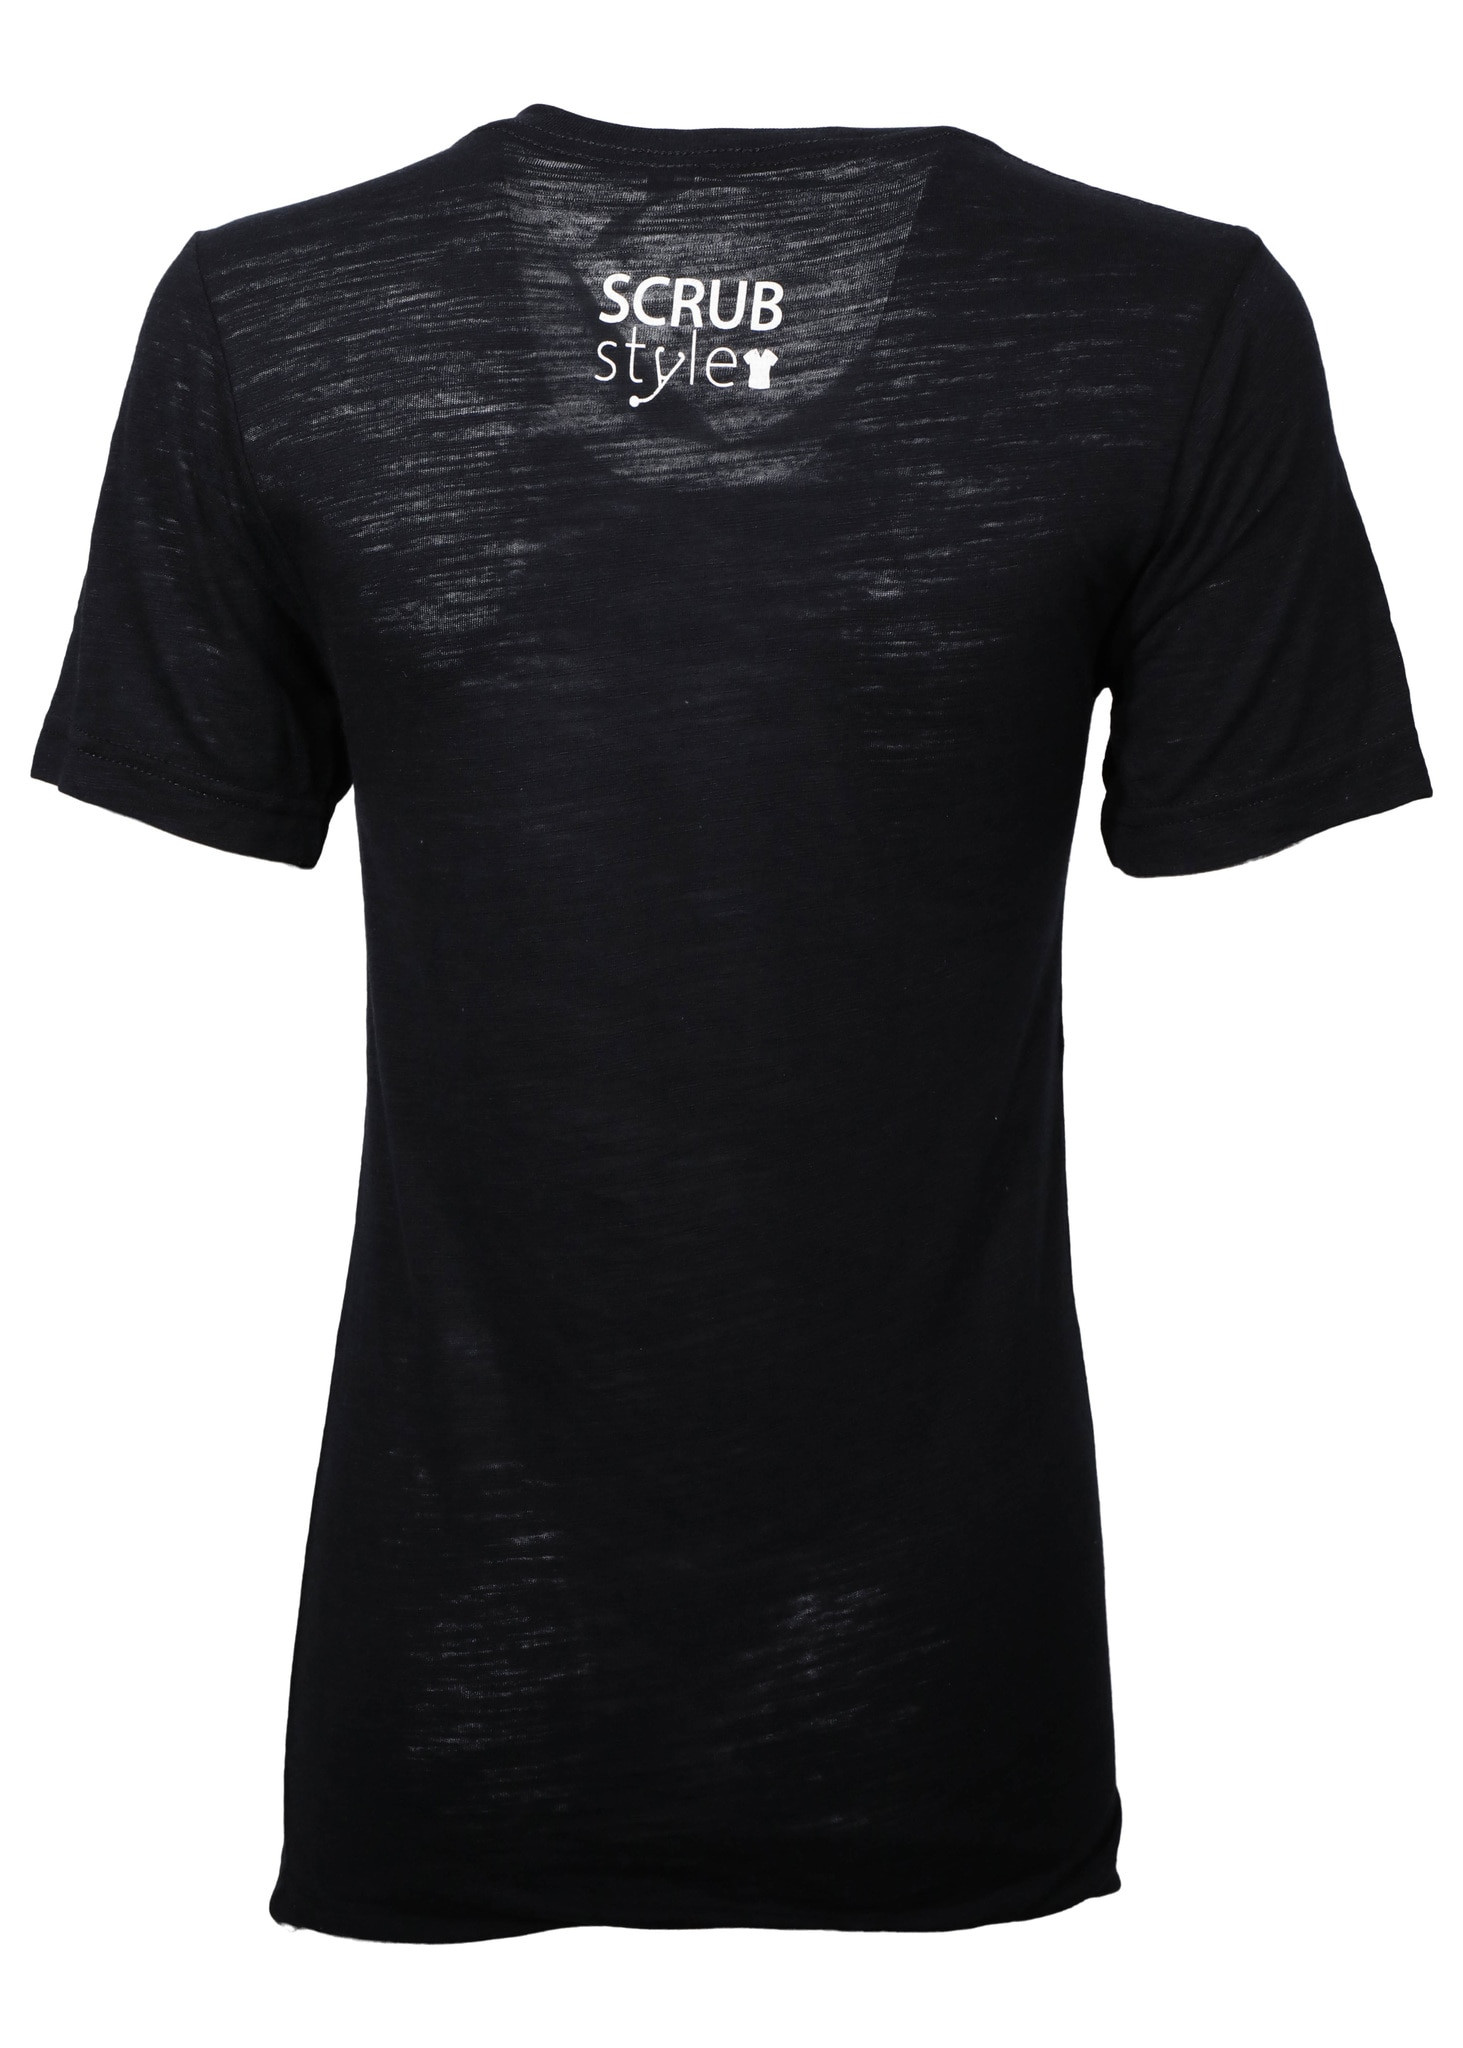 "ScrubStyle ""Ohio Nurse"" Women's Tee 